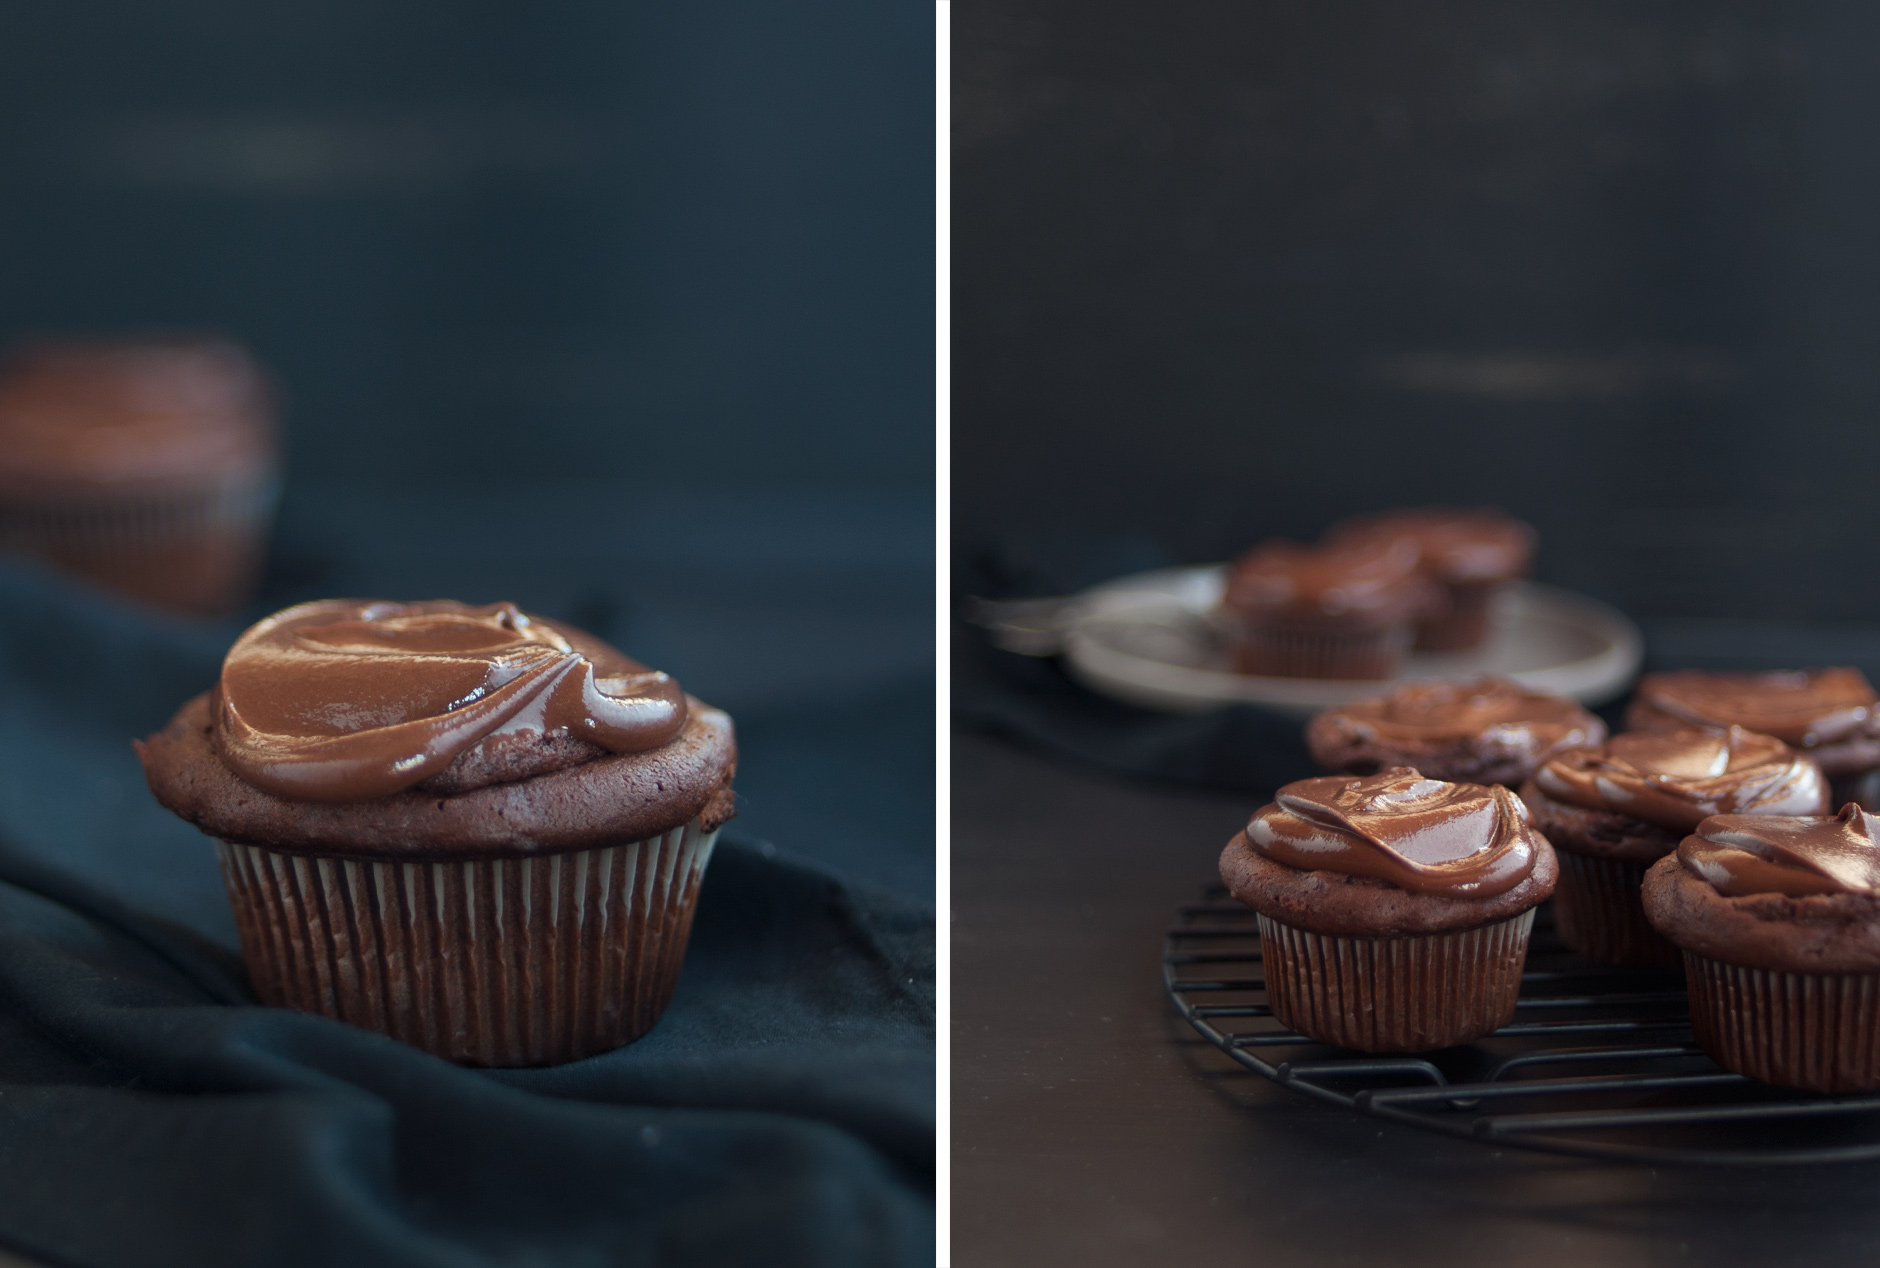 brownie_cupcakes_food_photography_2.jpg